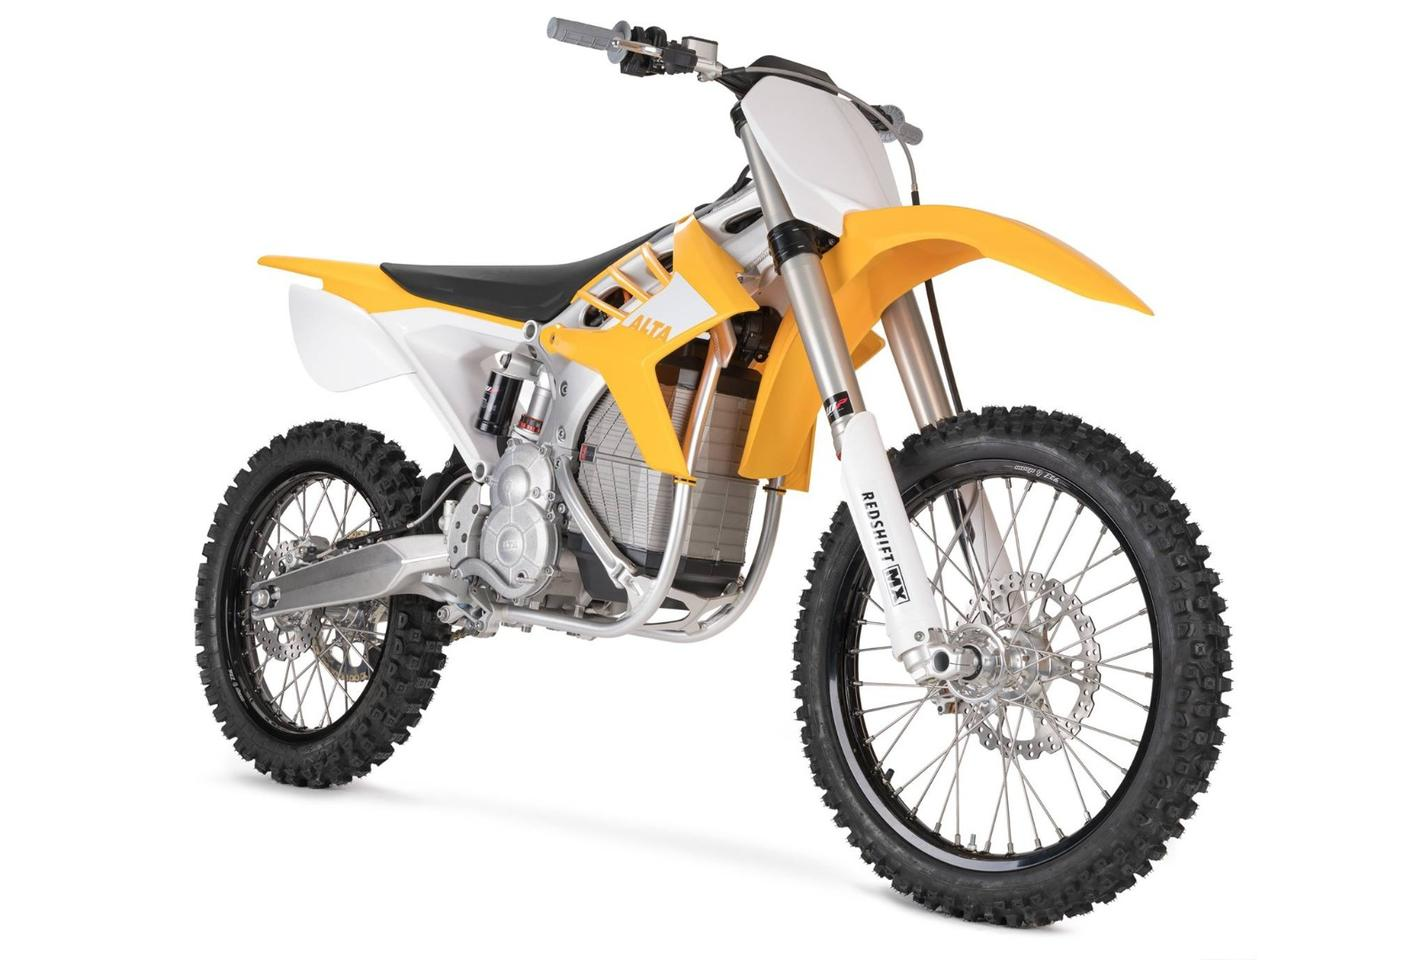 The Redshift MX is Alta Motors' flagship model